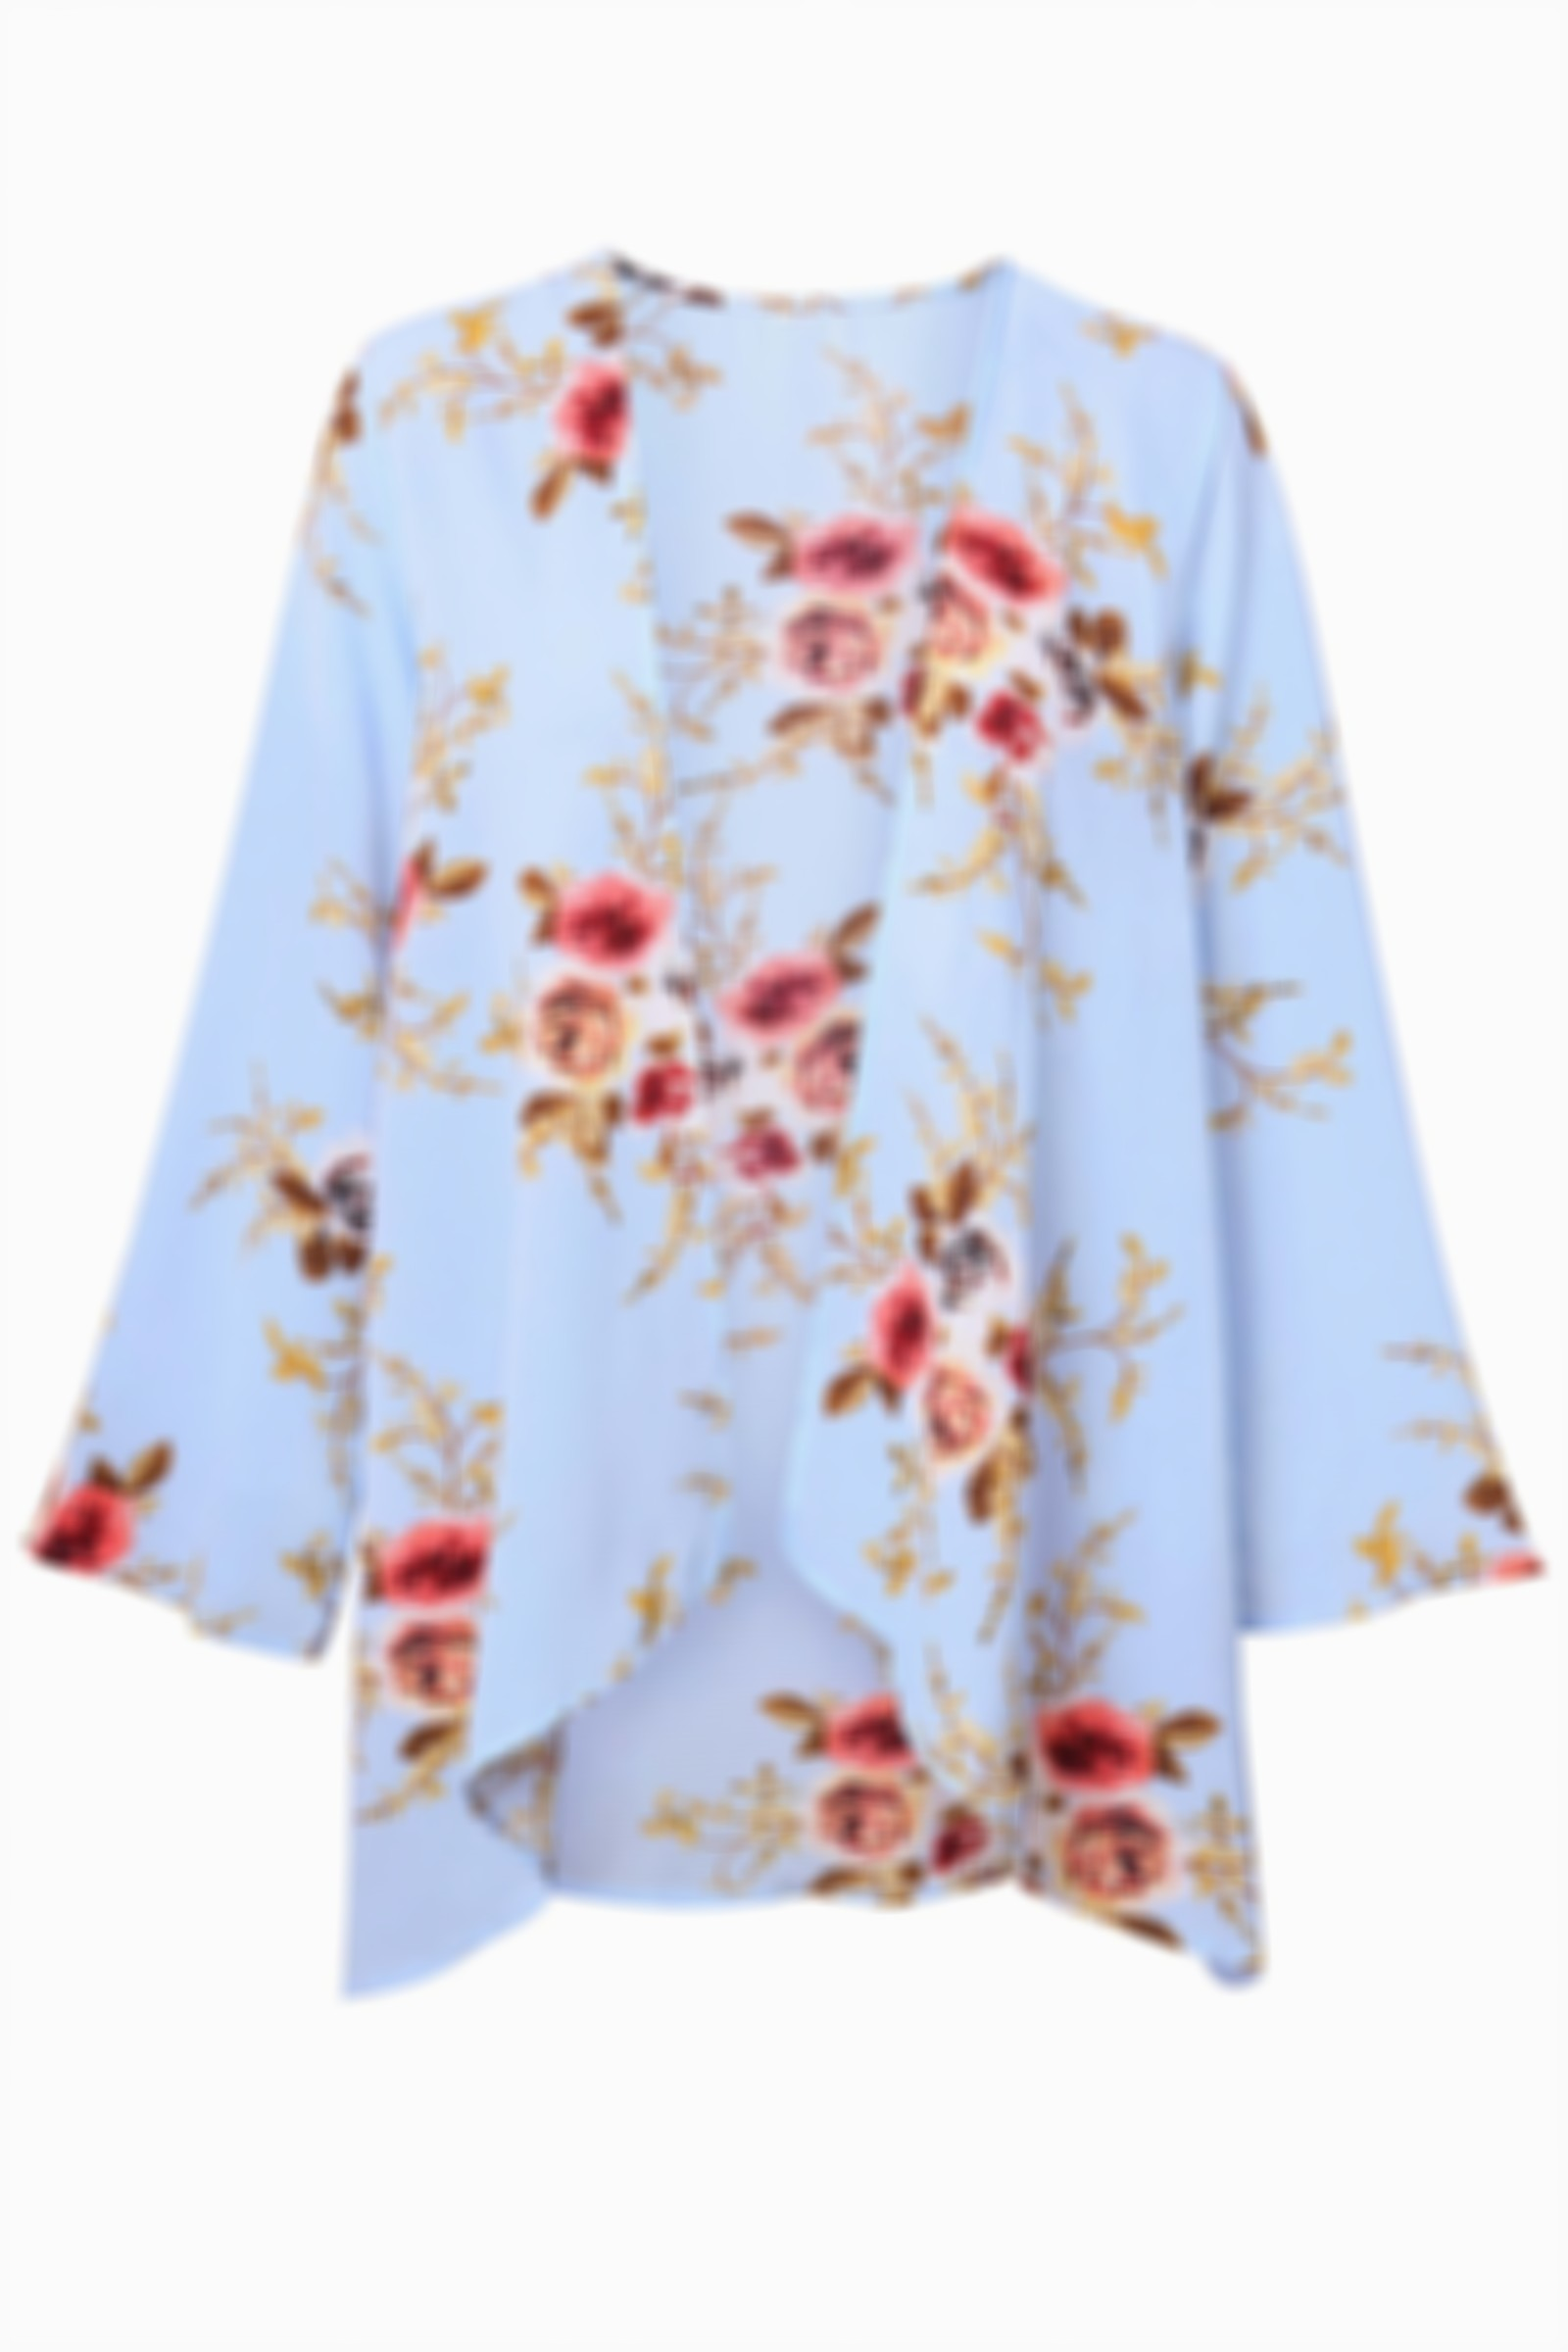 Rose Flower Printed Cardigan Outerwear